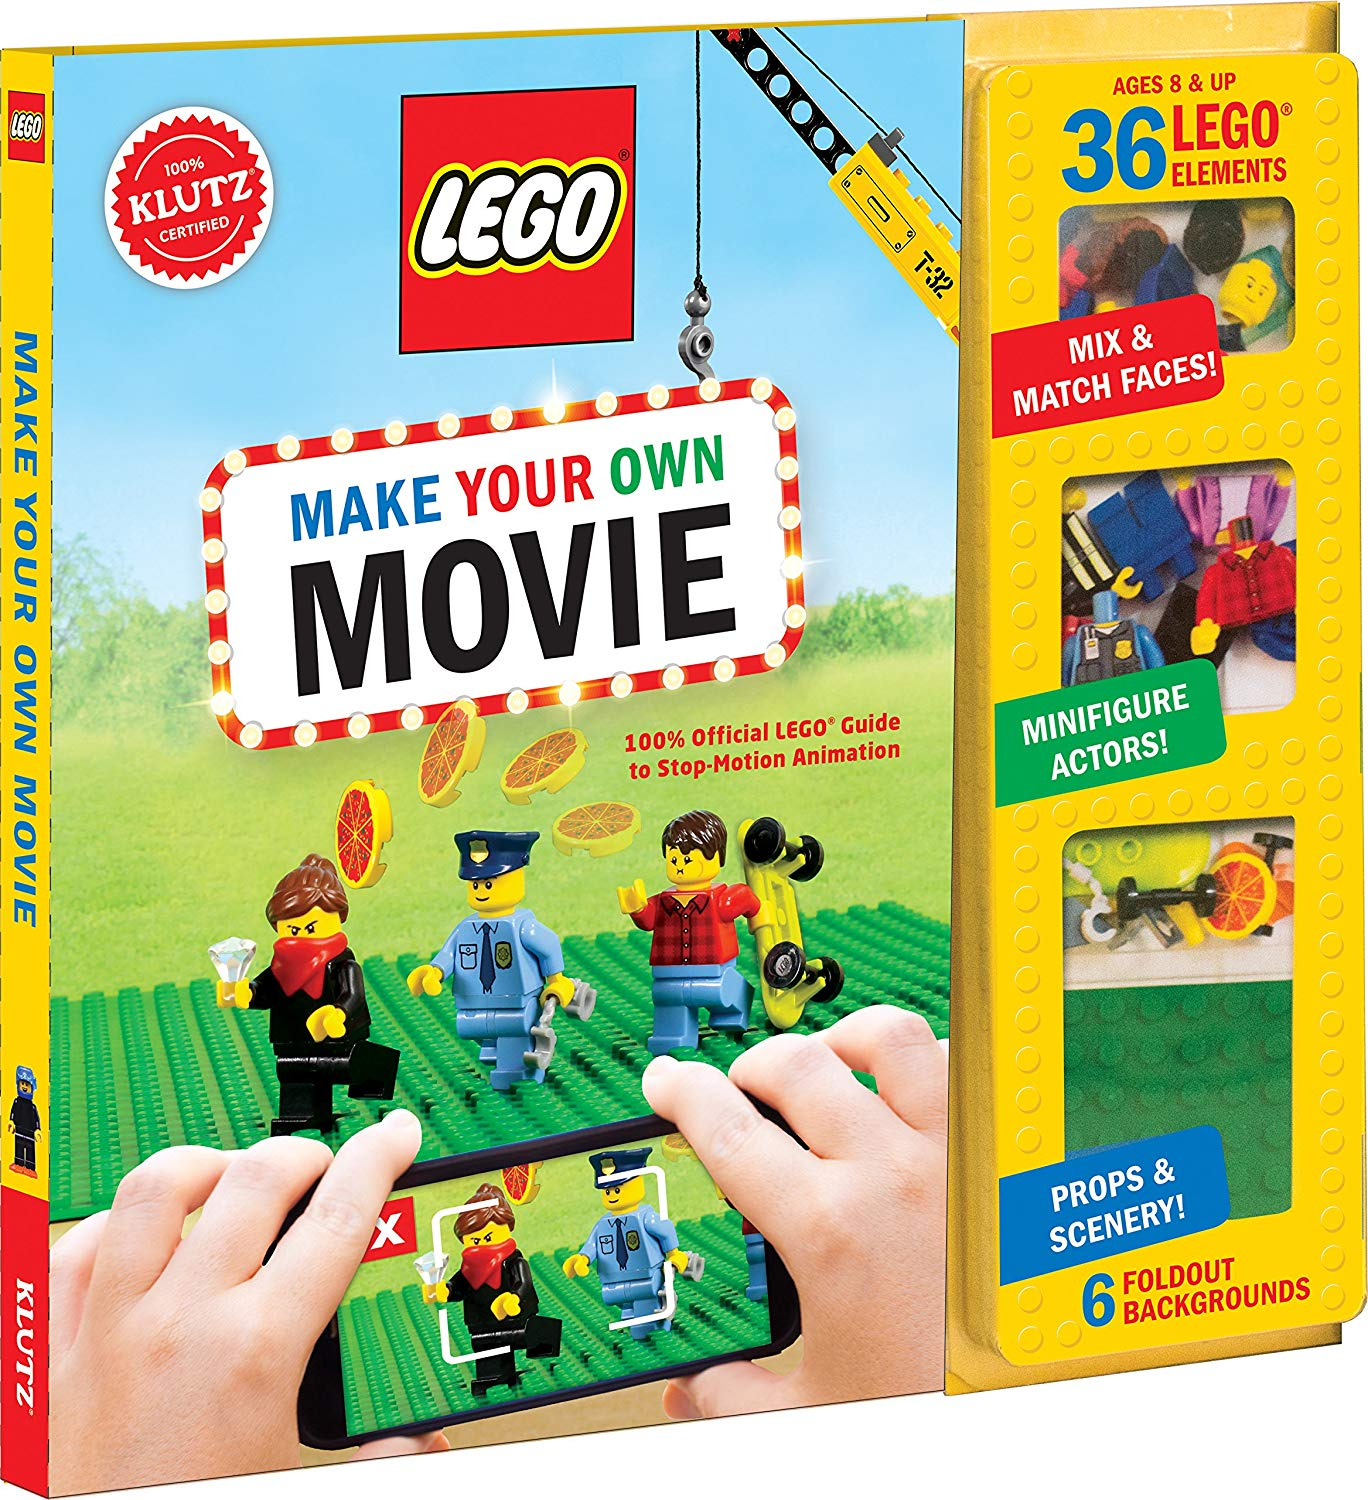 Cool gifts for tween boys (and girls): Klutz LEGO make your own movie kit